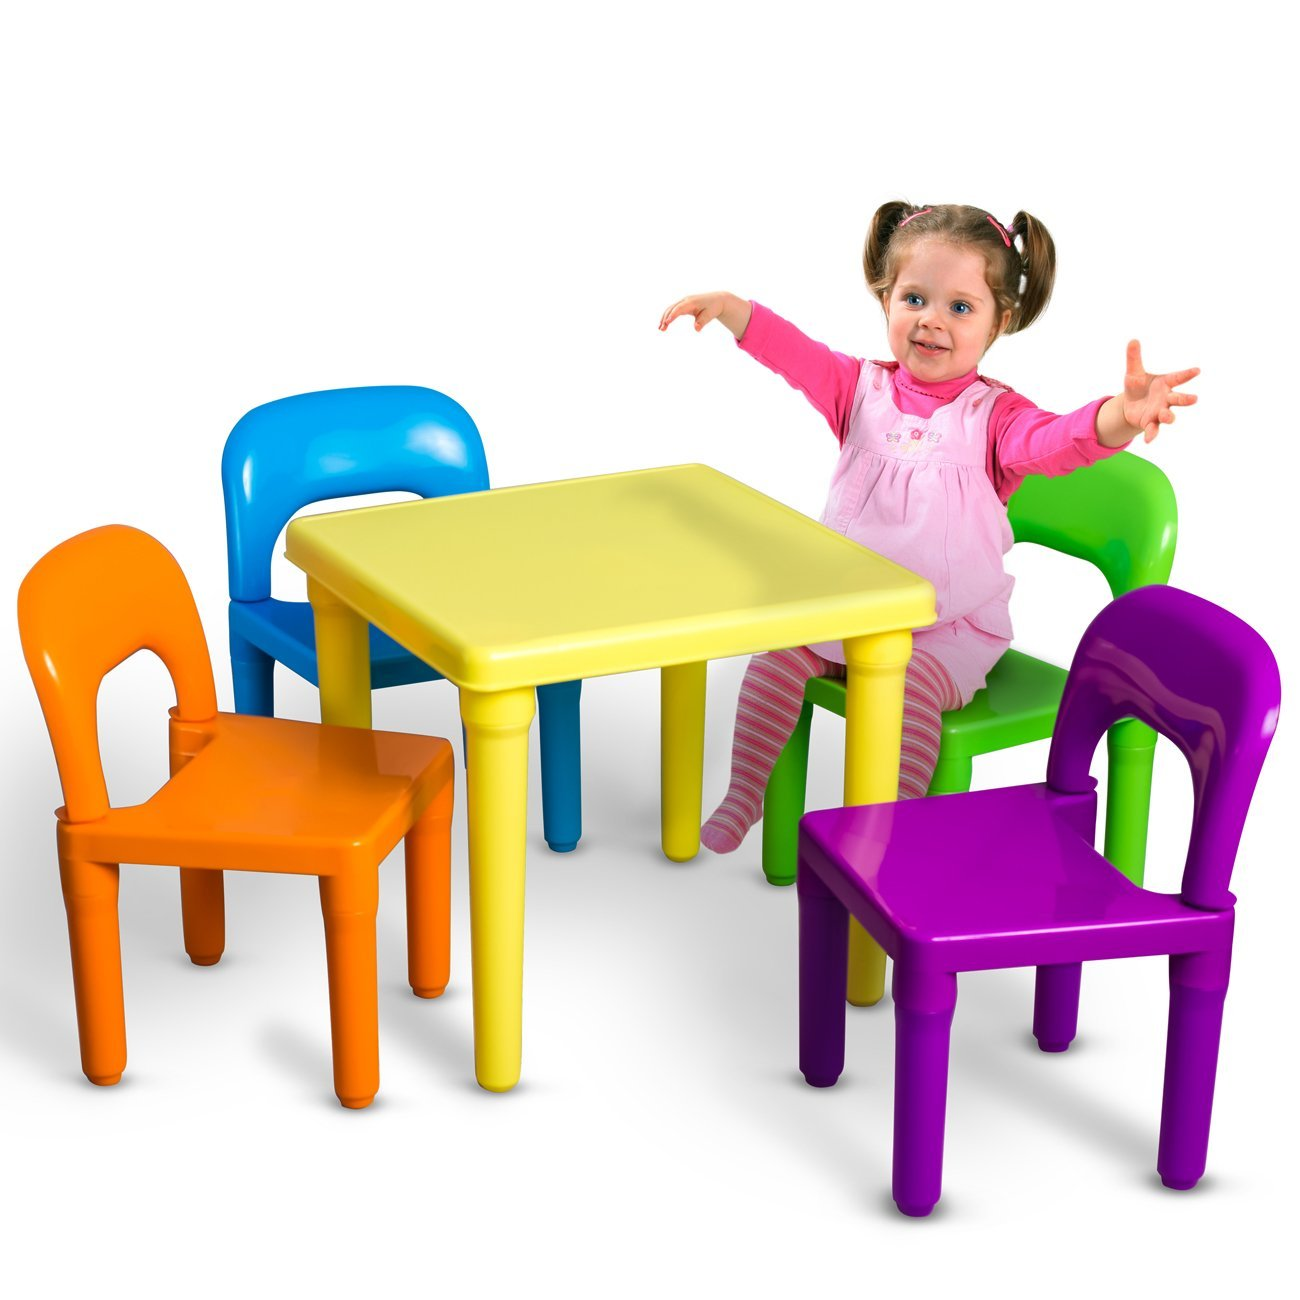 Total Fab Children s Plastic Table and Chair Sets